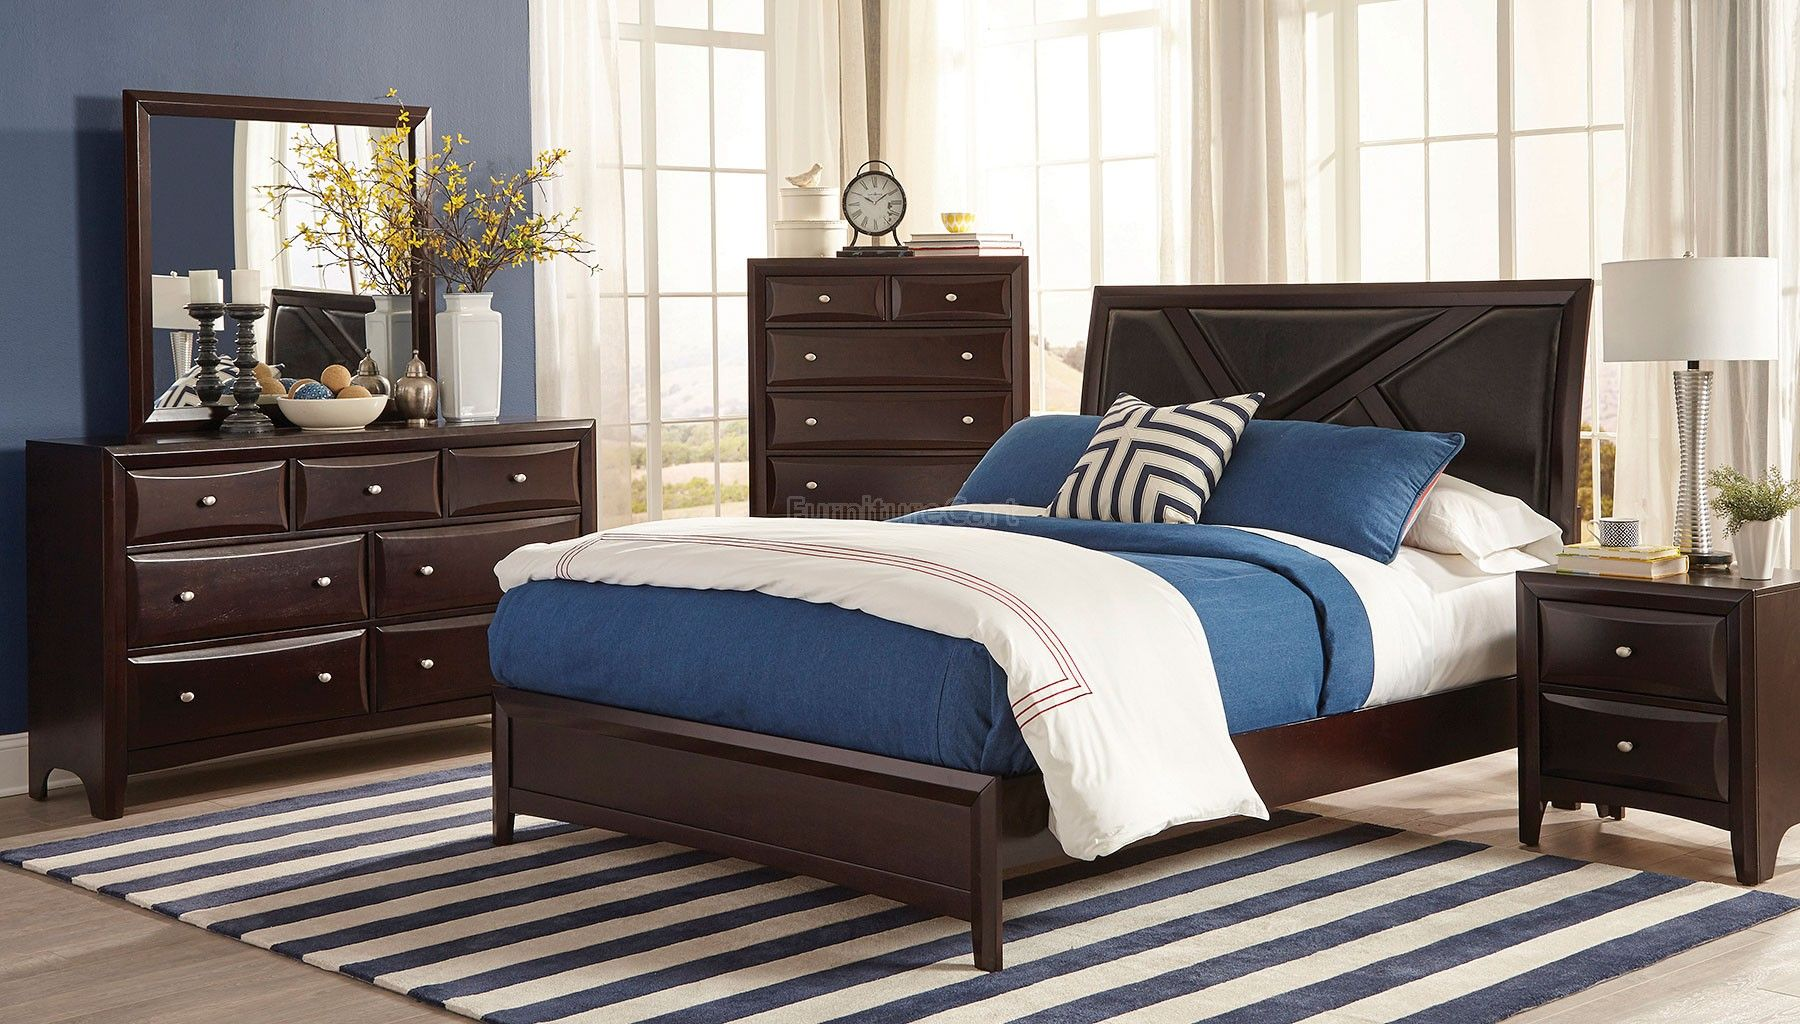 Rossville Sleigh Bedroom Set Furniture, Sleigh bedroom